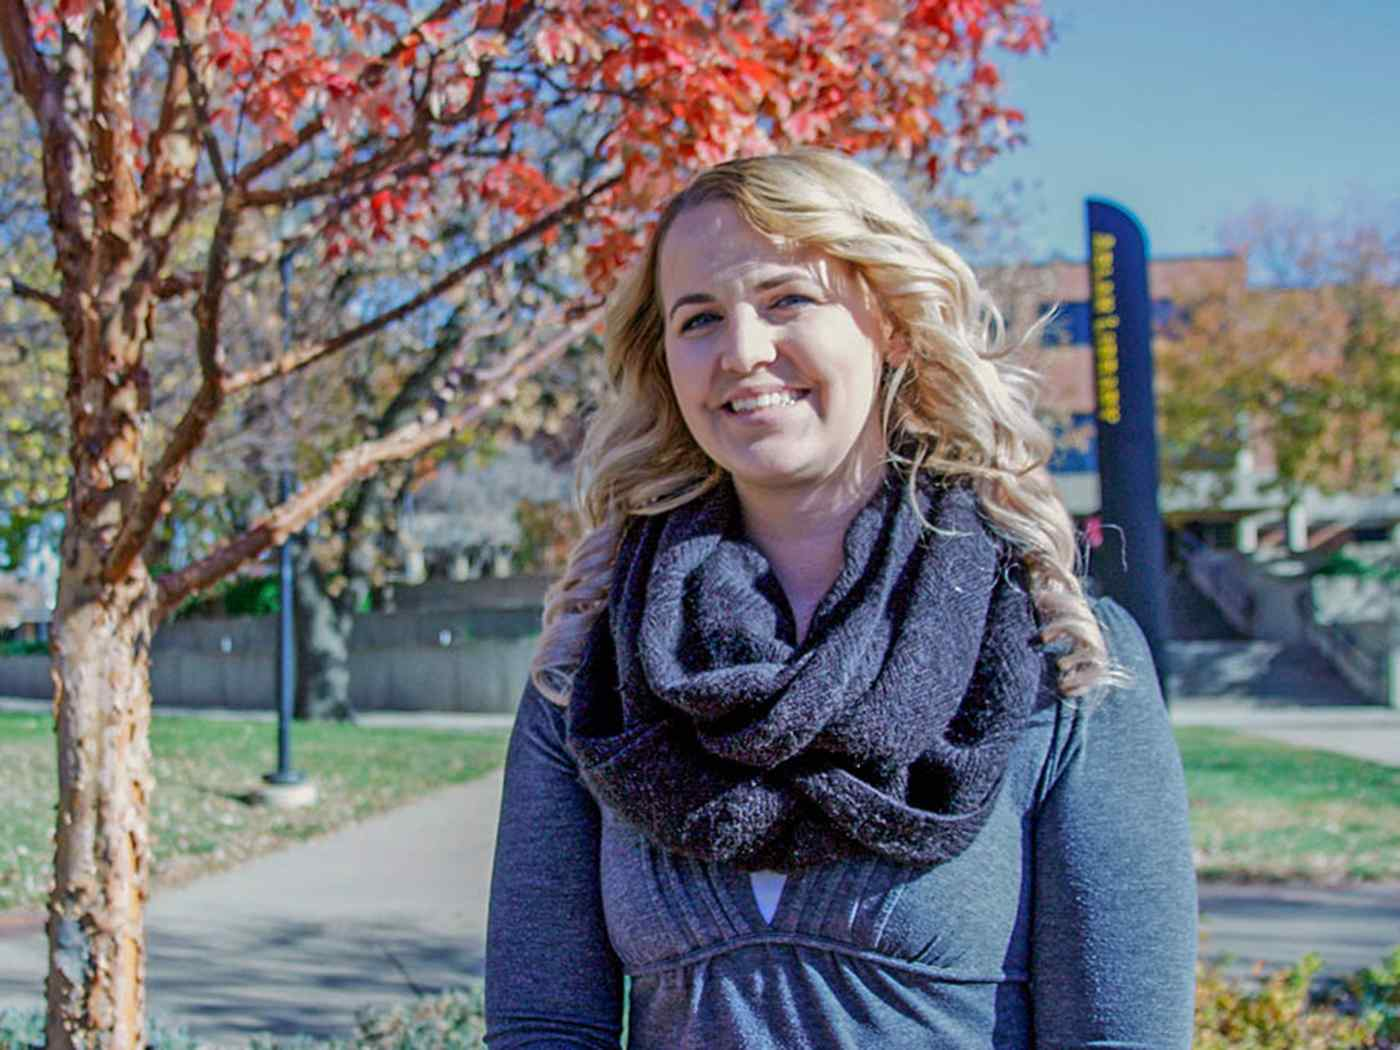 Female psychology student photographed smiling during the day on campus.